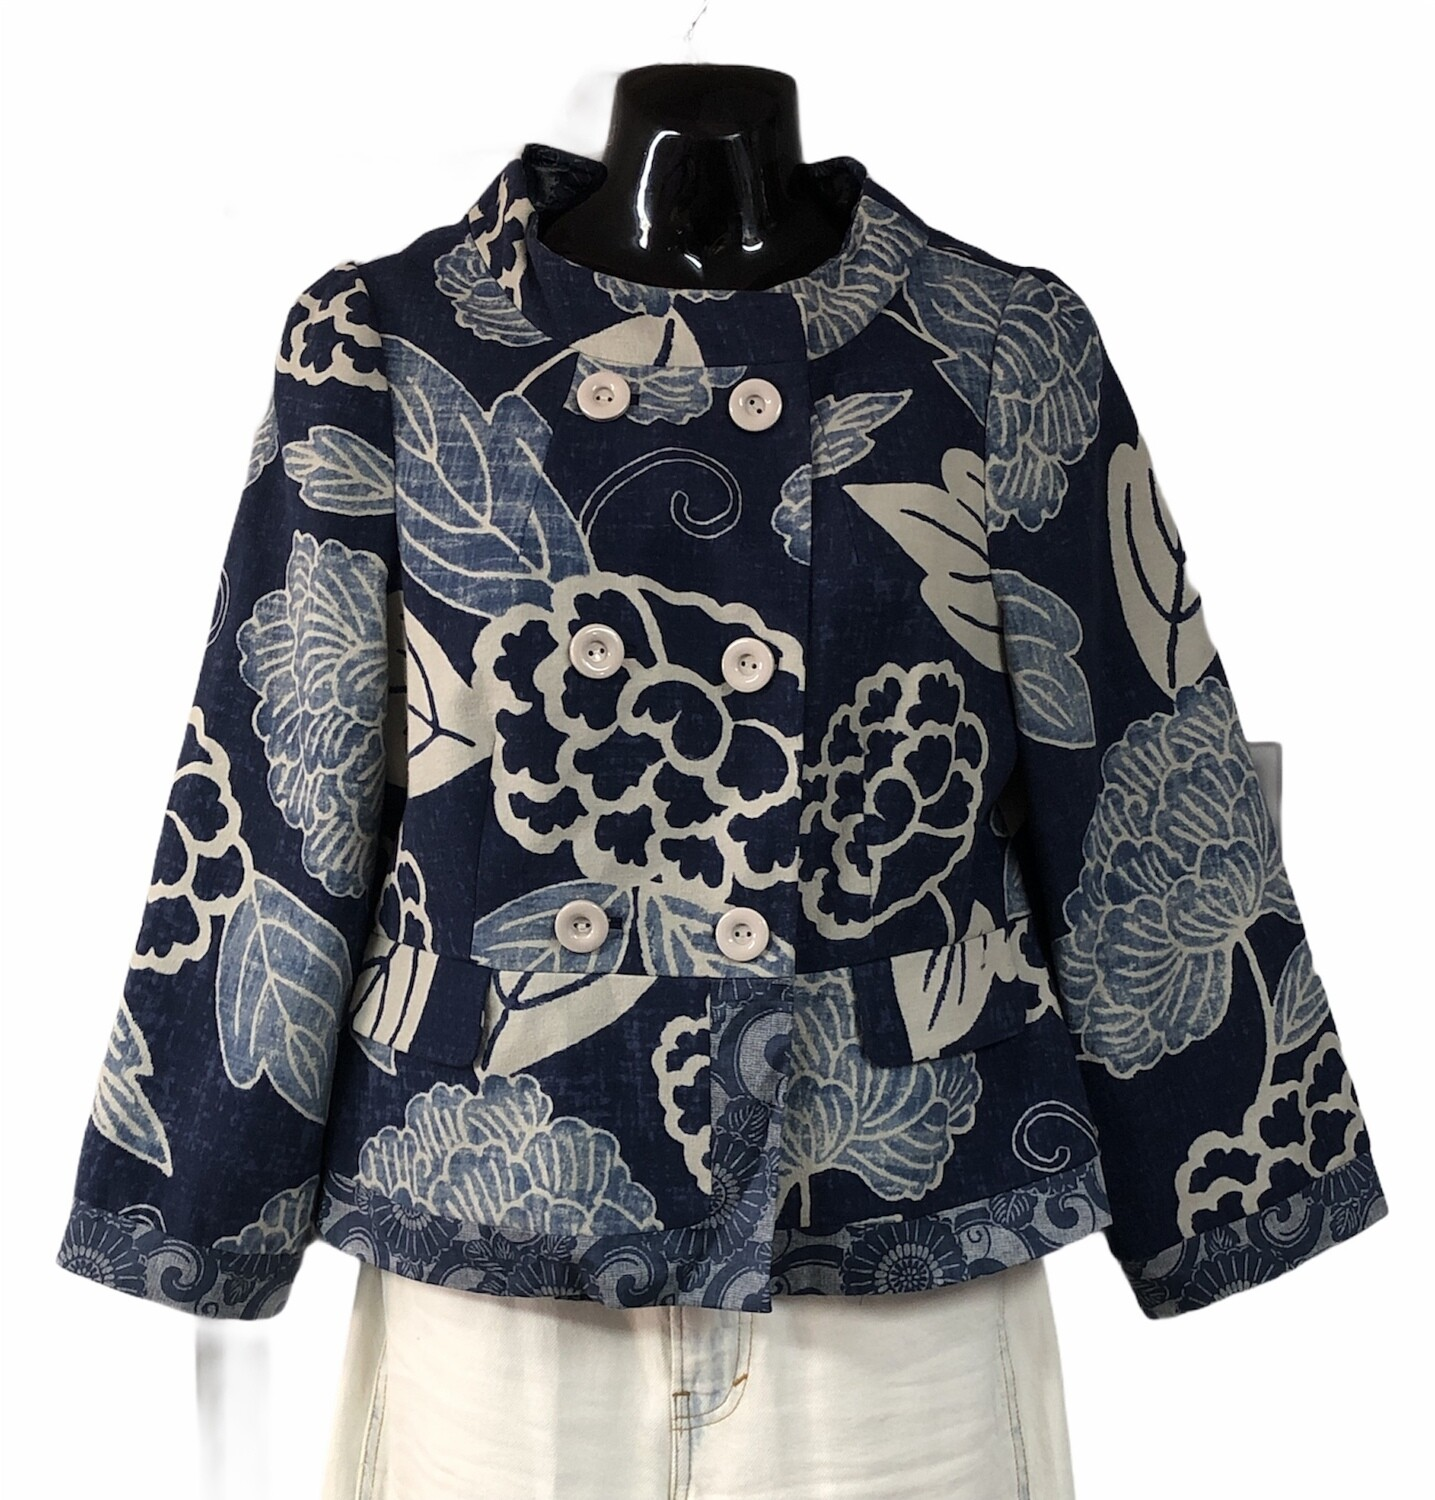 Anthropologie ELEVENSES Abstract Navy Floral Mandarin Style Jacket size 8